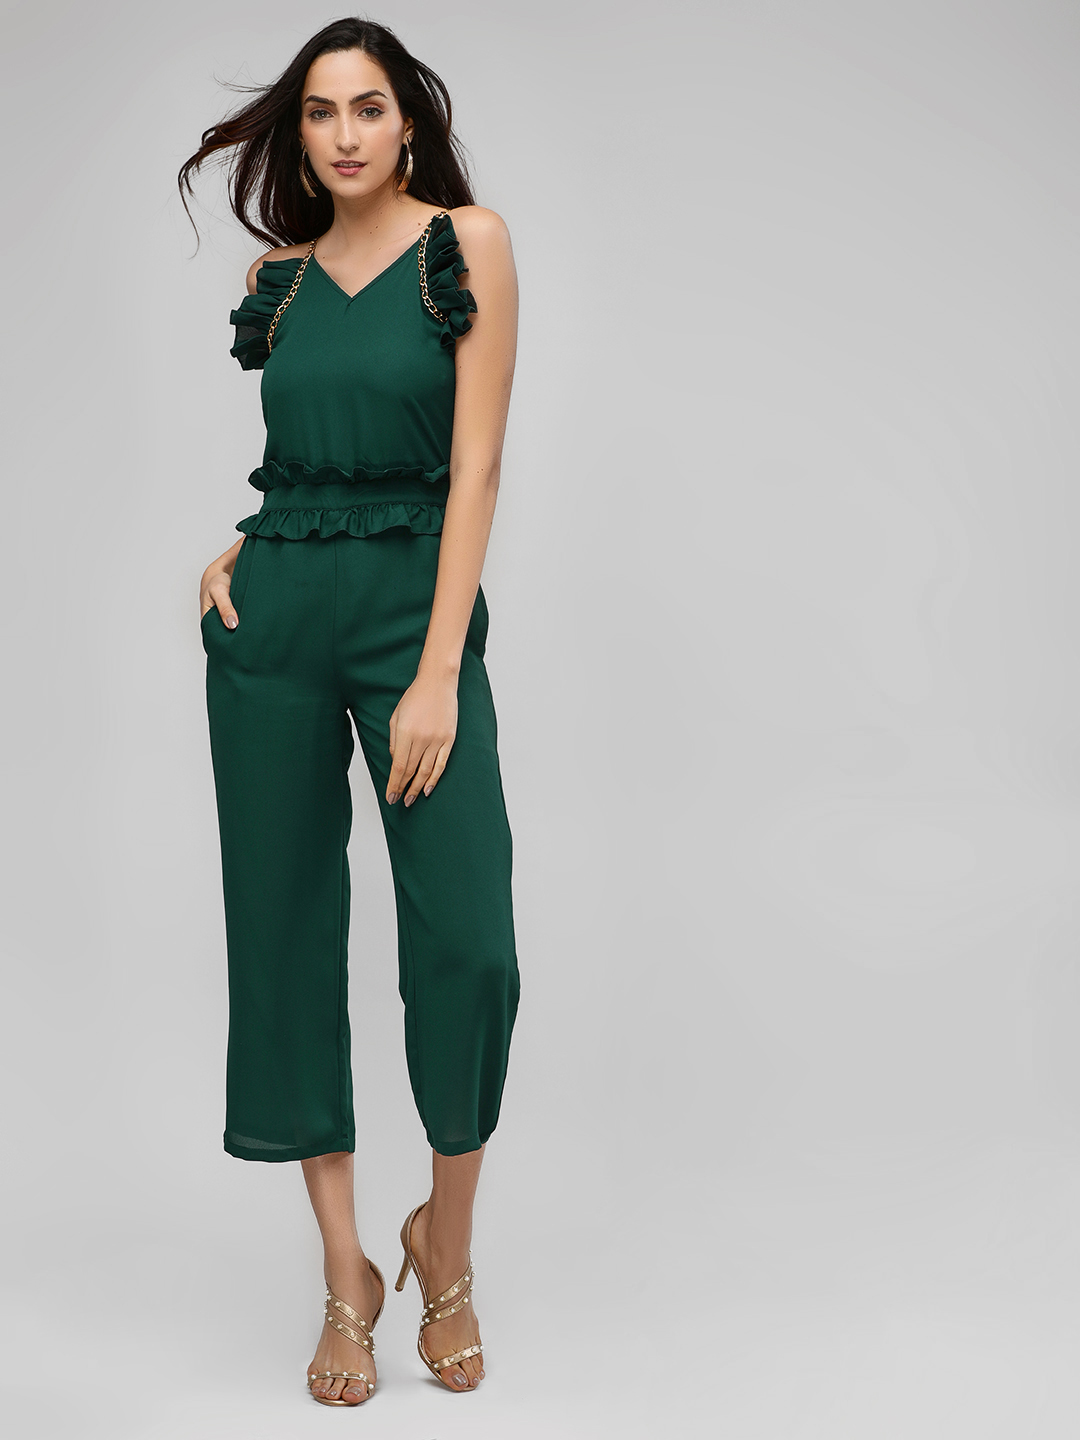 Street9 Green Ruffle Detail Strappy Jumpsuit 1